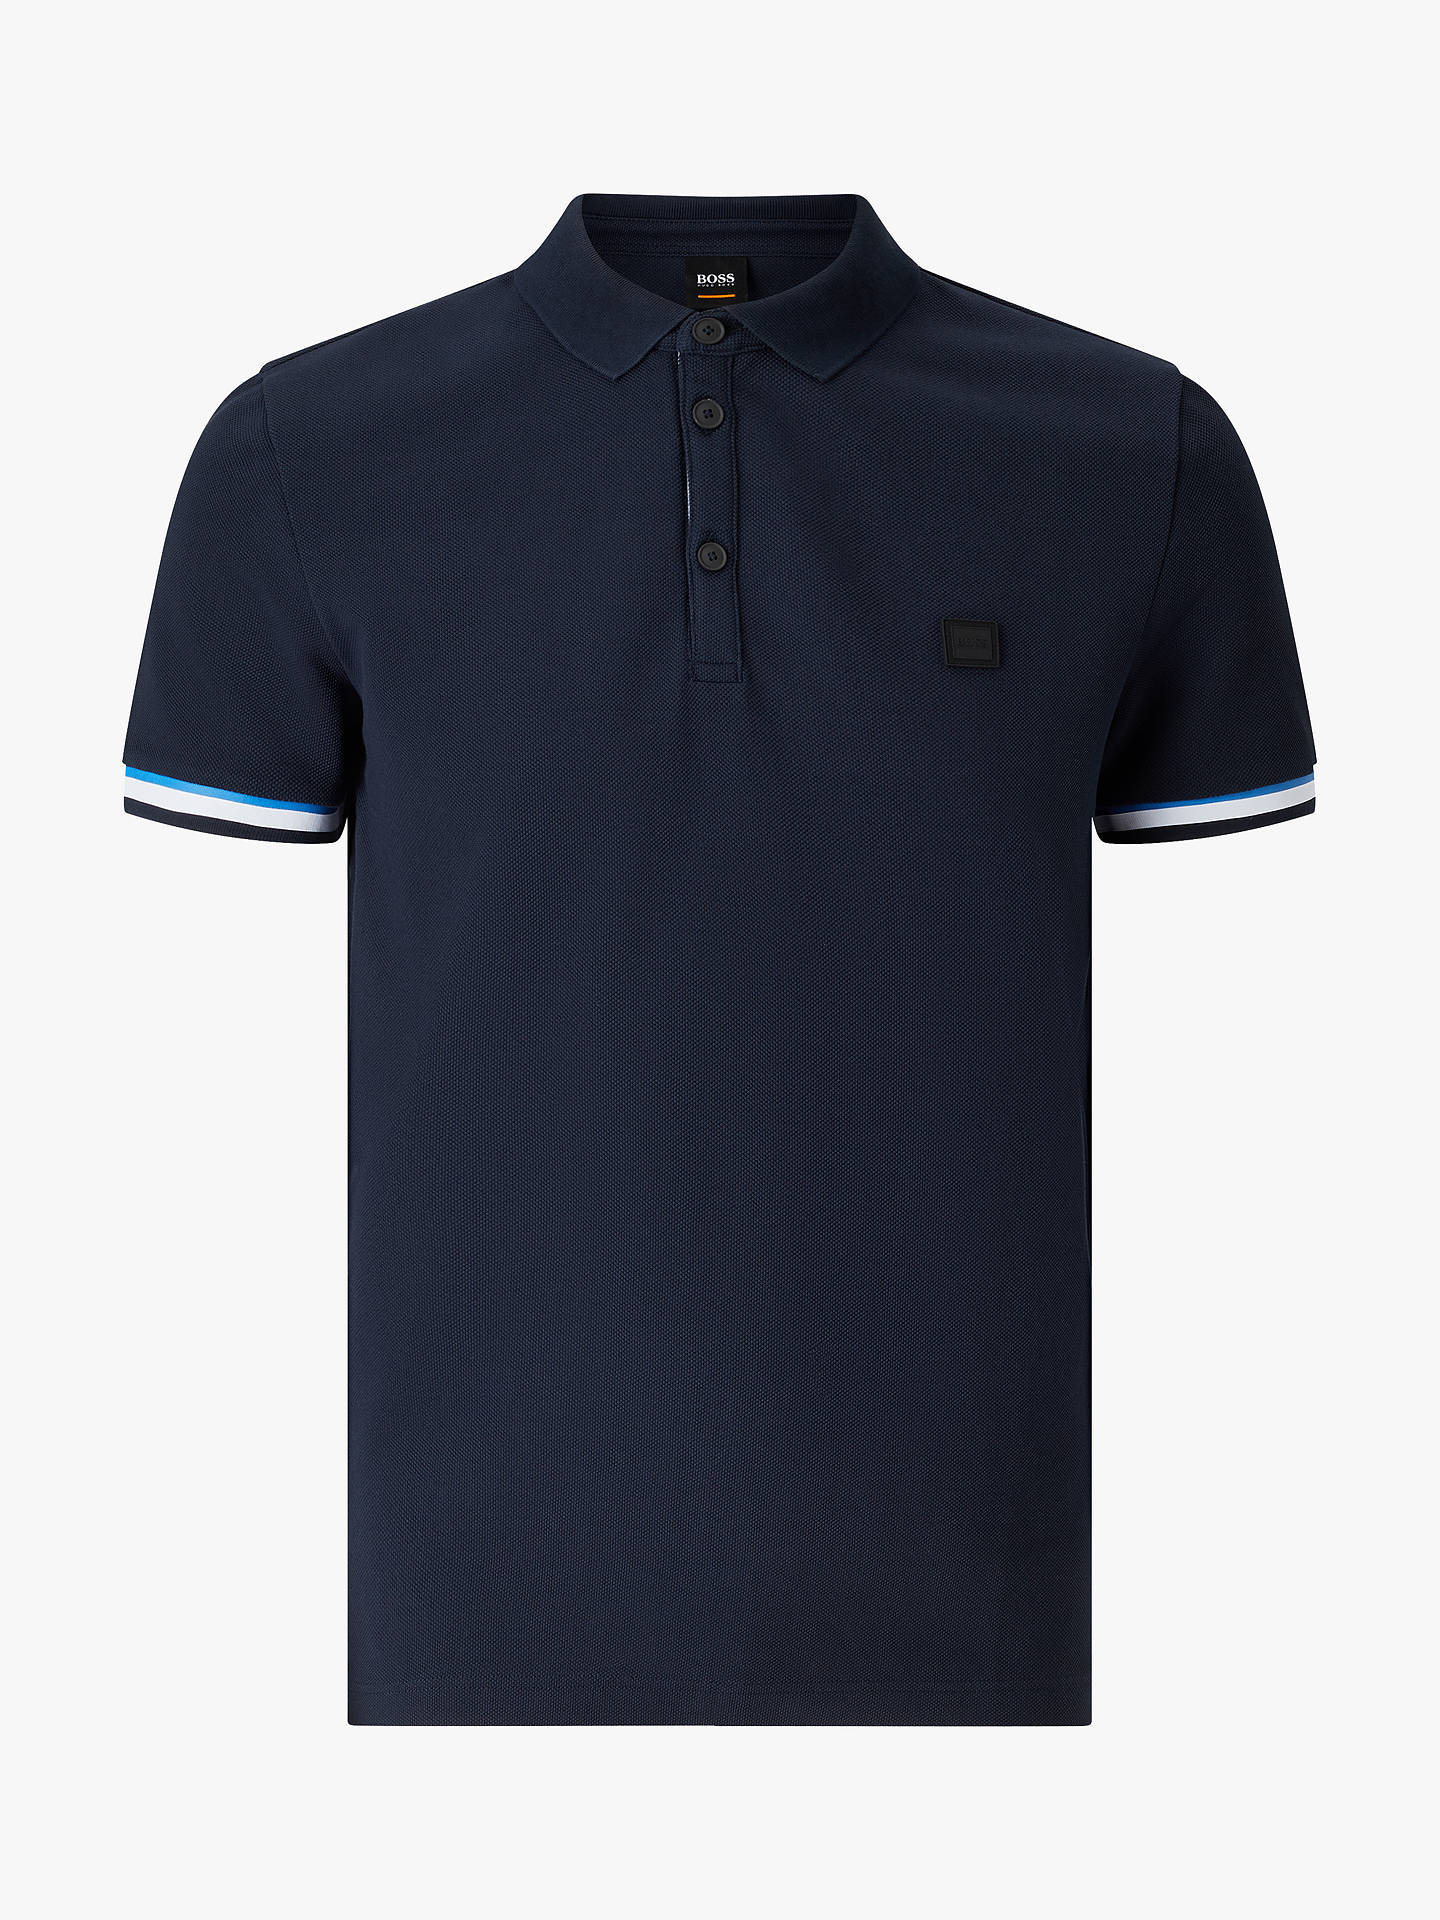 3198f119 ... Buy BOSS Printcat Polo Shirt, Dark Blue, XL Online at johnlewis.com